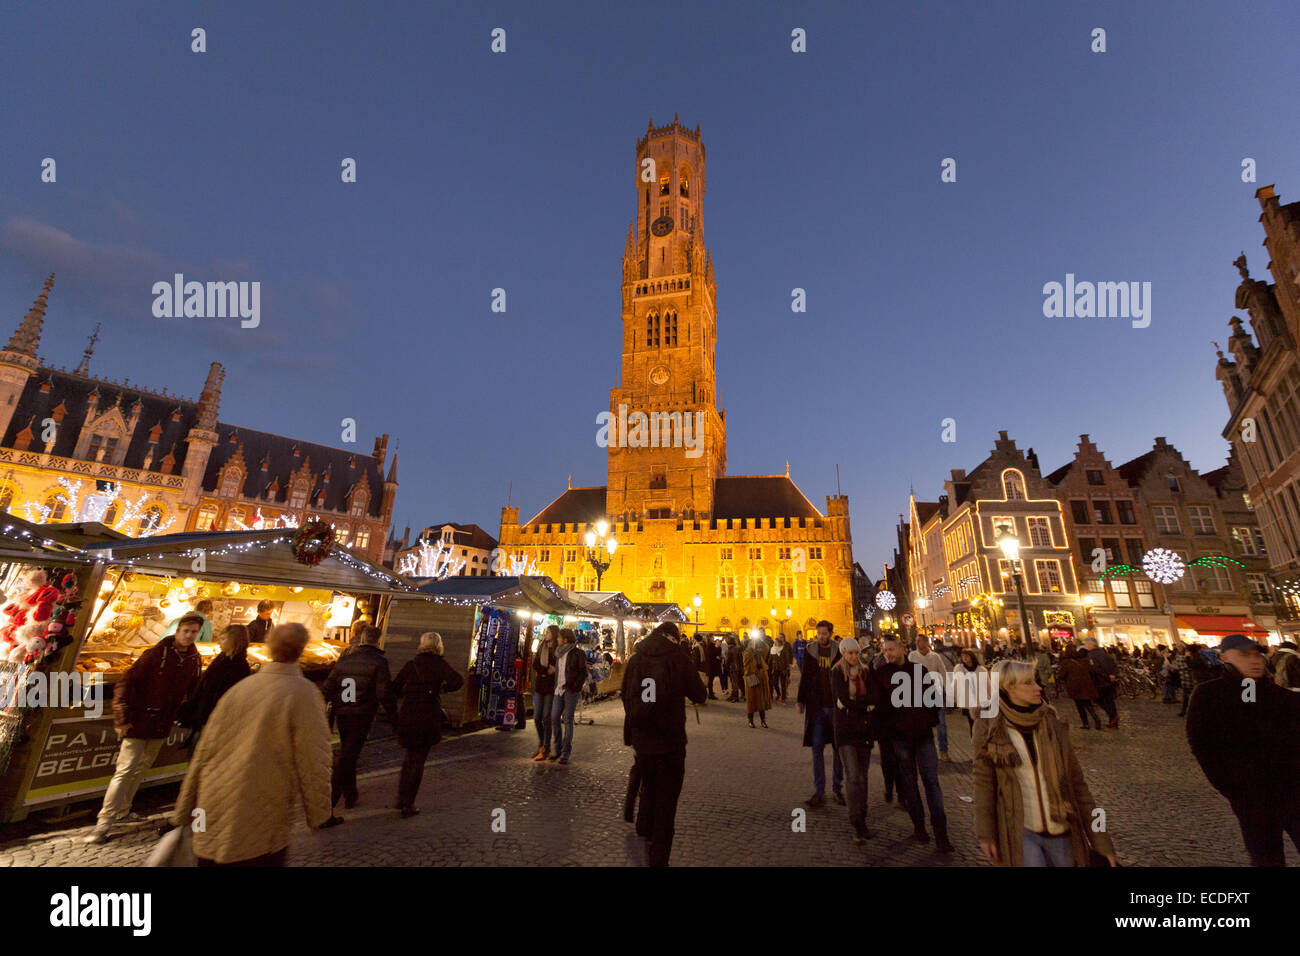 Bruges Christmas Market.Bruges Christmas Market Stock Photos Bruges Christmas